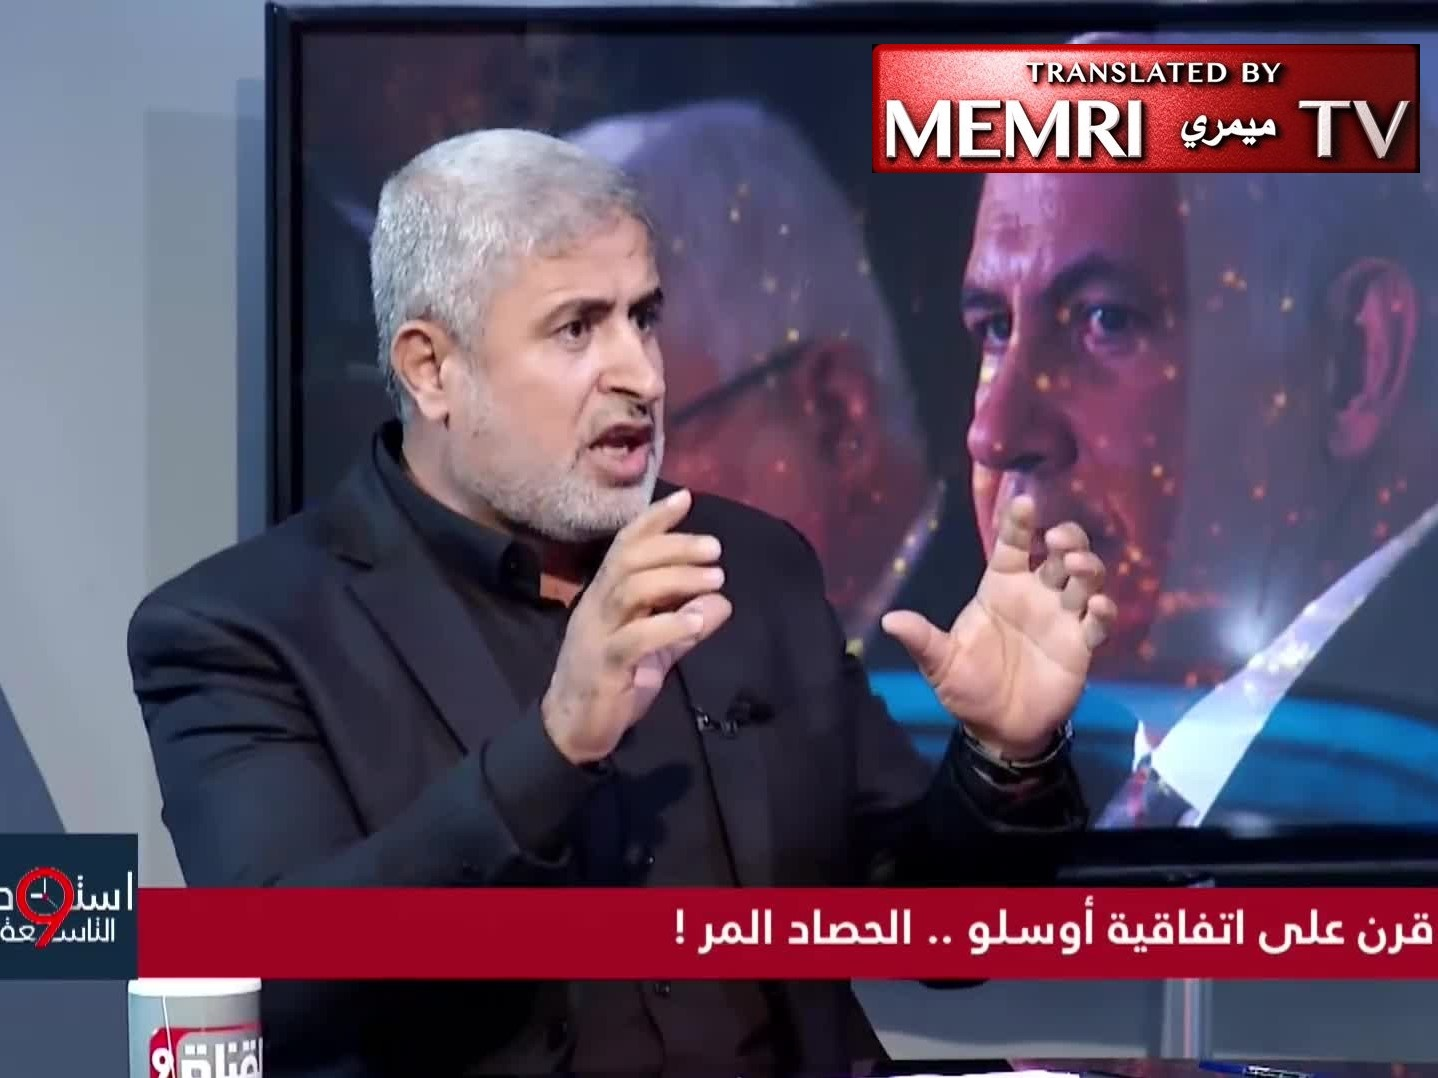 Hamas Official Talal Nassar: Hamas Accepts Palestinian State within Pre-1967 Borders, But Does Not Relinquish the Rest of Palestine or Recognize Israel